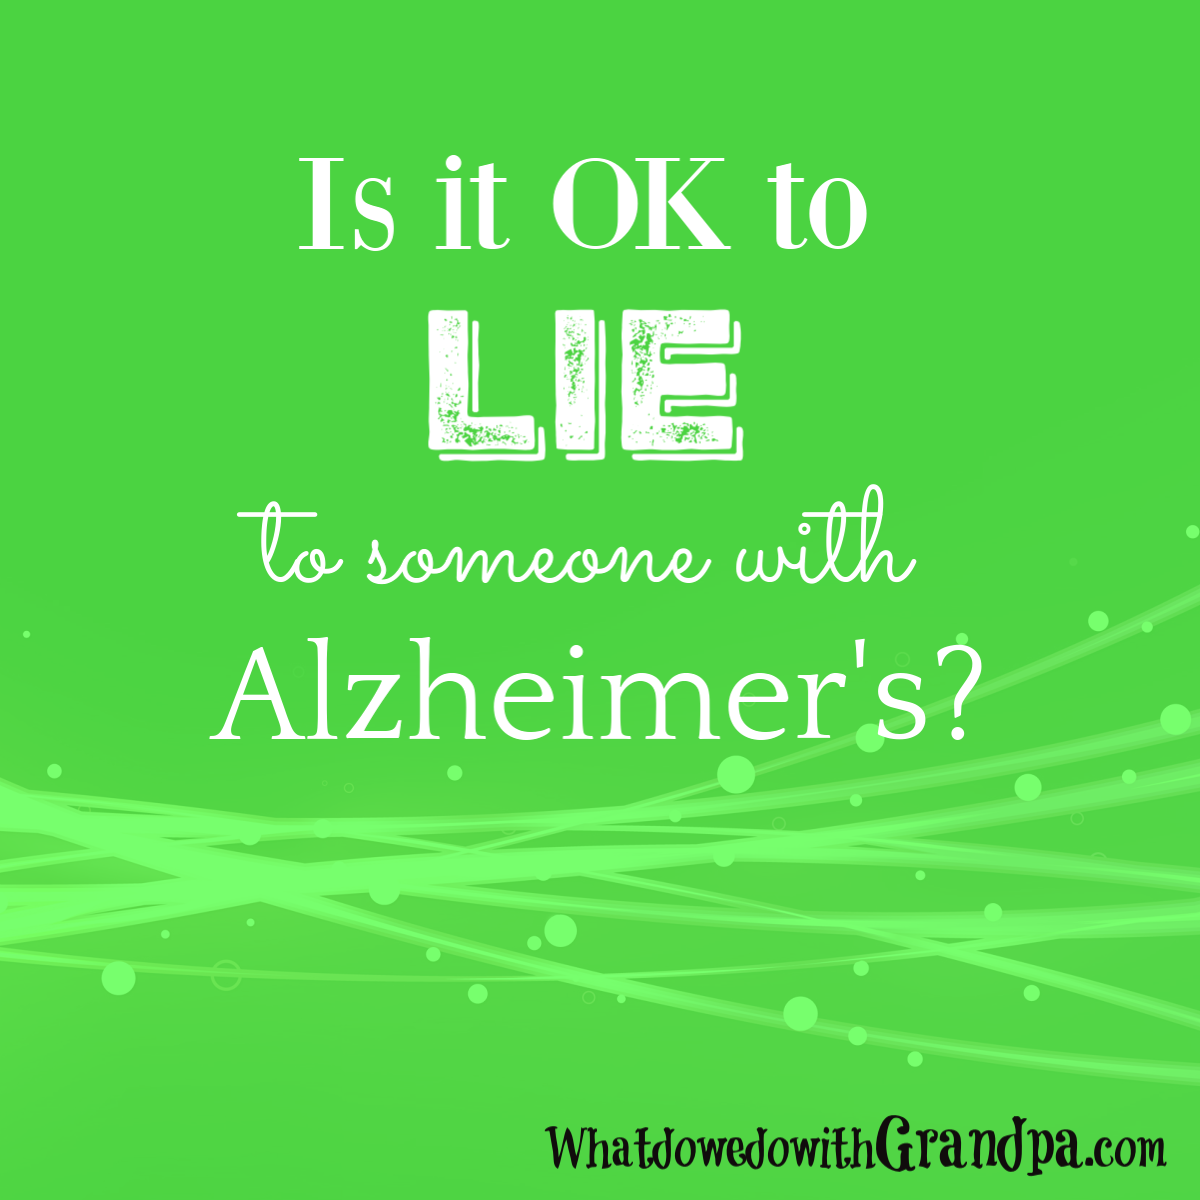 Is it OK to Lie to Someone with Alzheimer's?